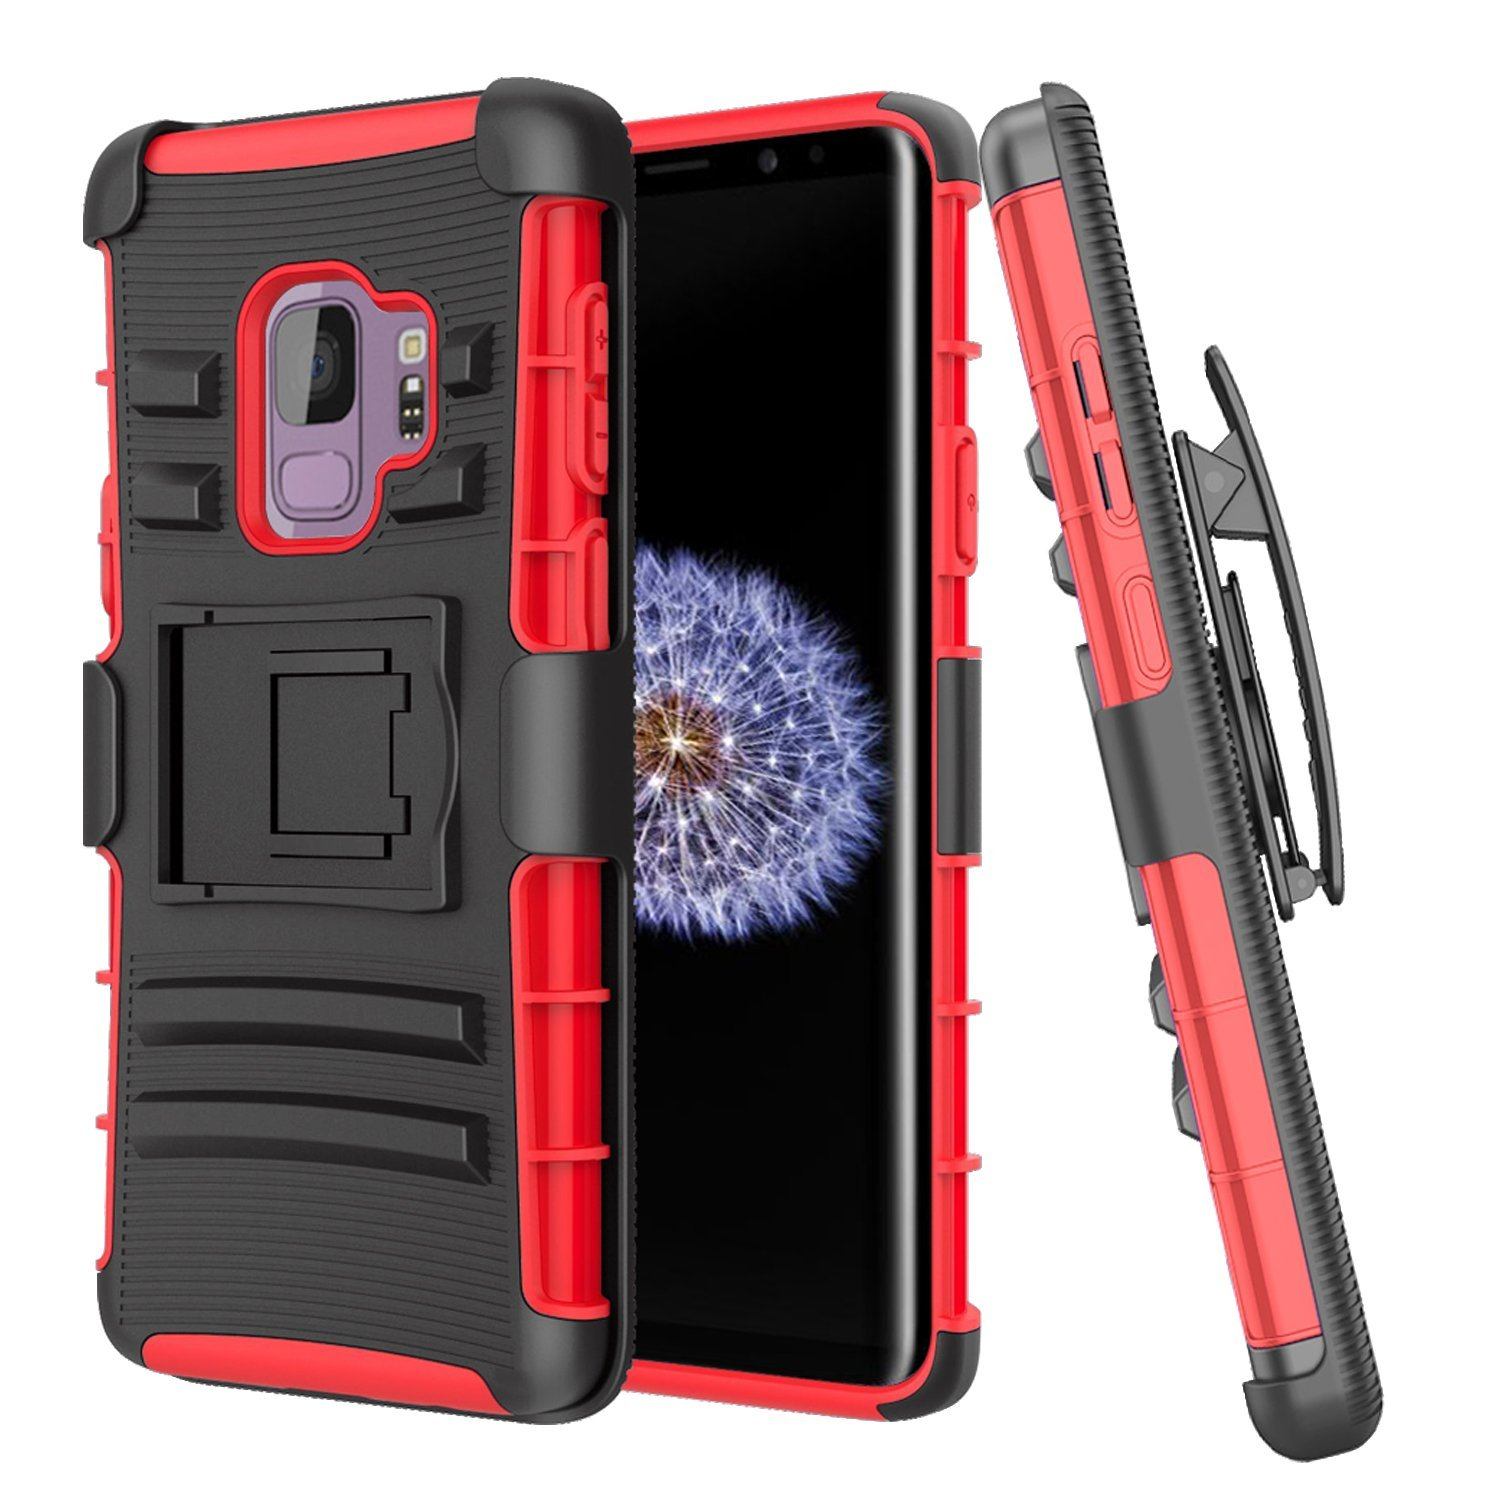 Galaxy S9 Case, Mignova Rugged Plastic Heavy Duty Armor Holster Defender Full Body Protective Hybrid Case Cover with Kickstand and Belt Swivel Clip for Samsung Galaxy S9 Smart Cell Phone (Red)